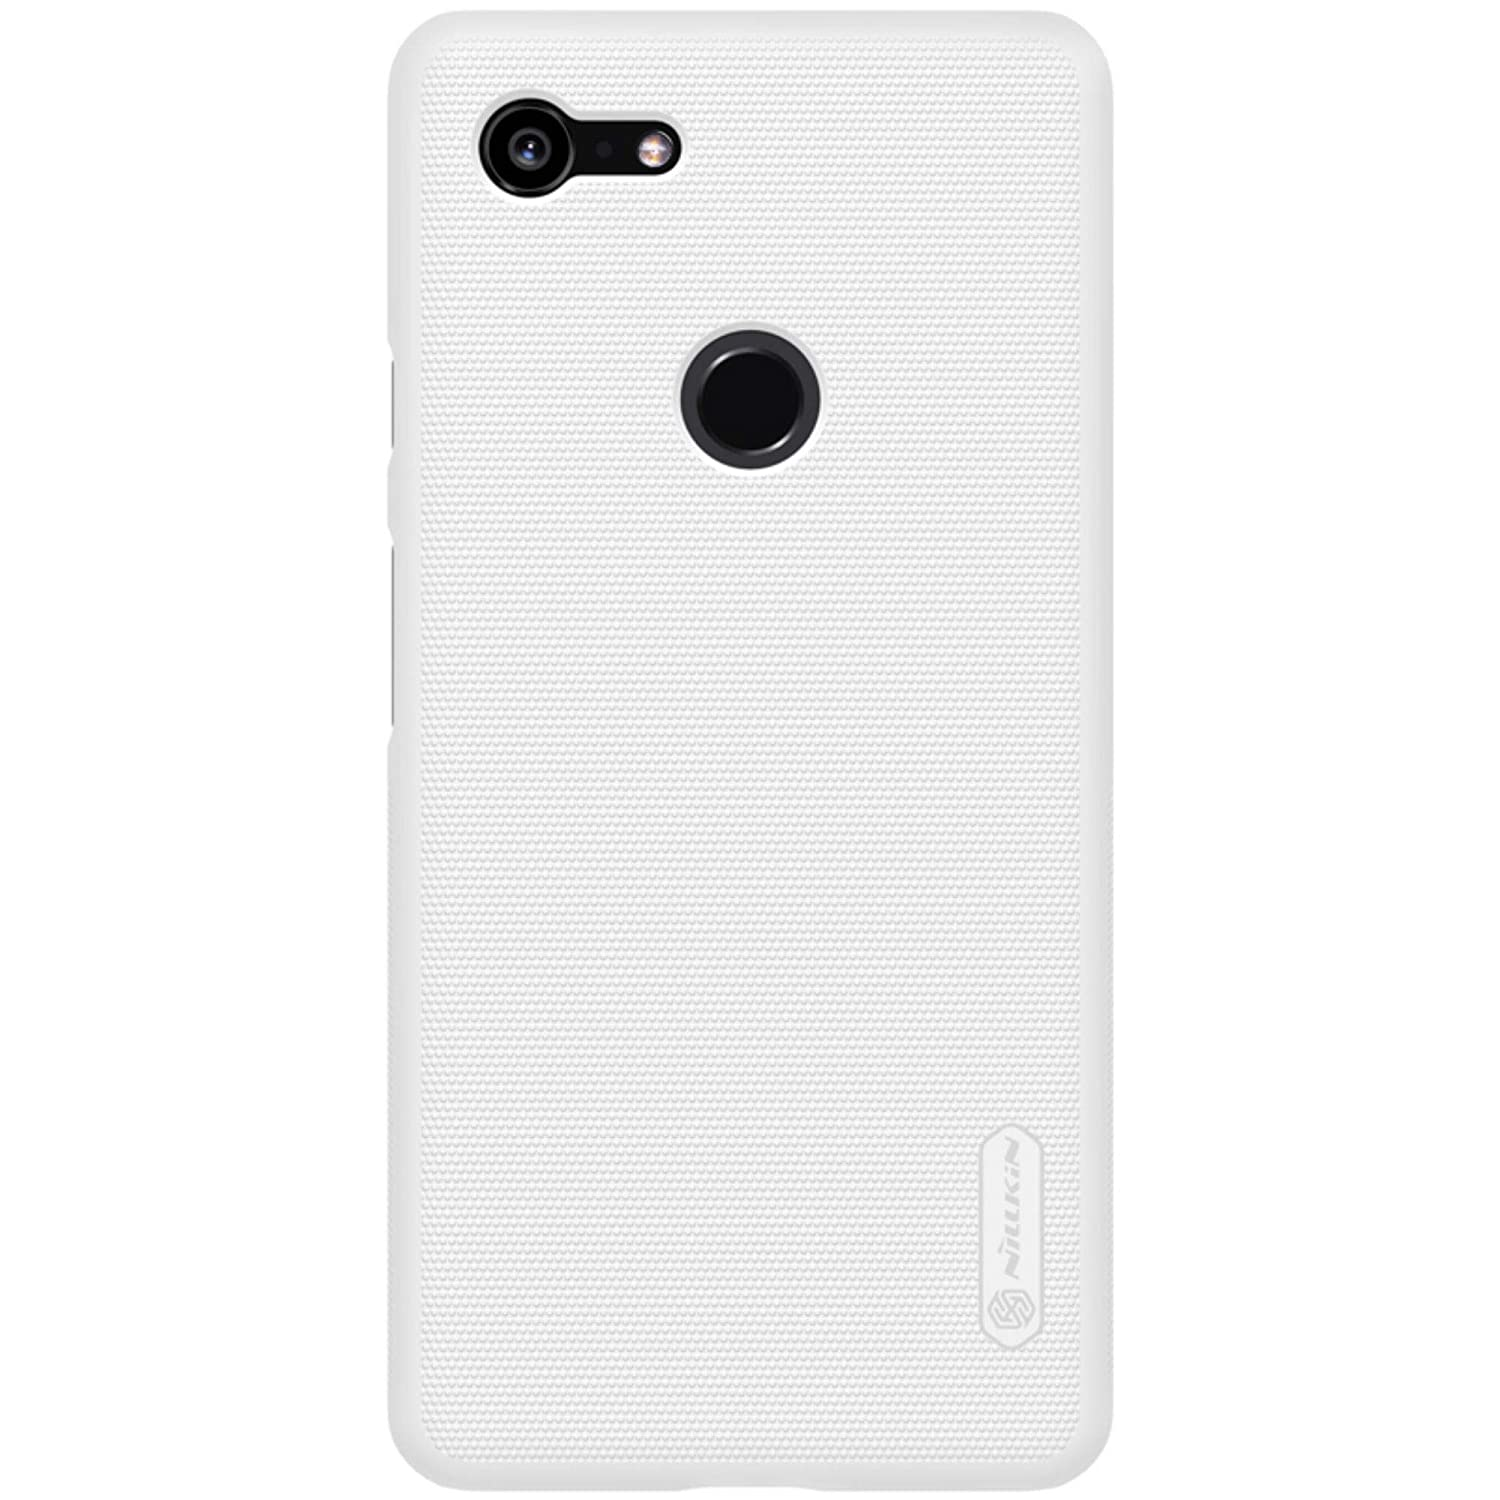 the best attitude 5a338 f3df8 Nillkin Google Pixel 3 XL Case, Frosted Shield Hard Case Back Cover  [Support Wireless Charging] for Google Pixel 3 XL - White